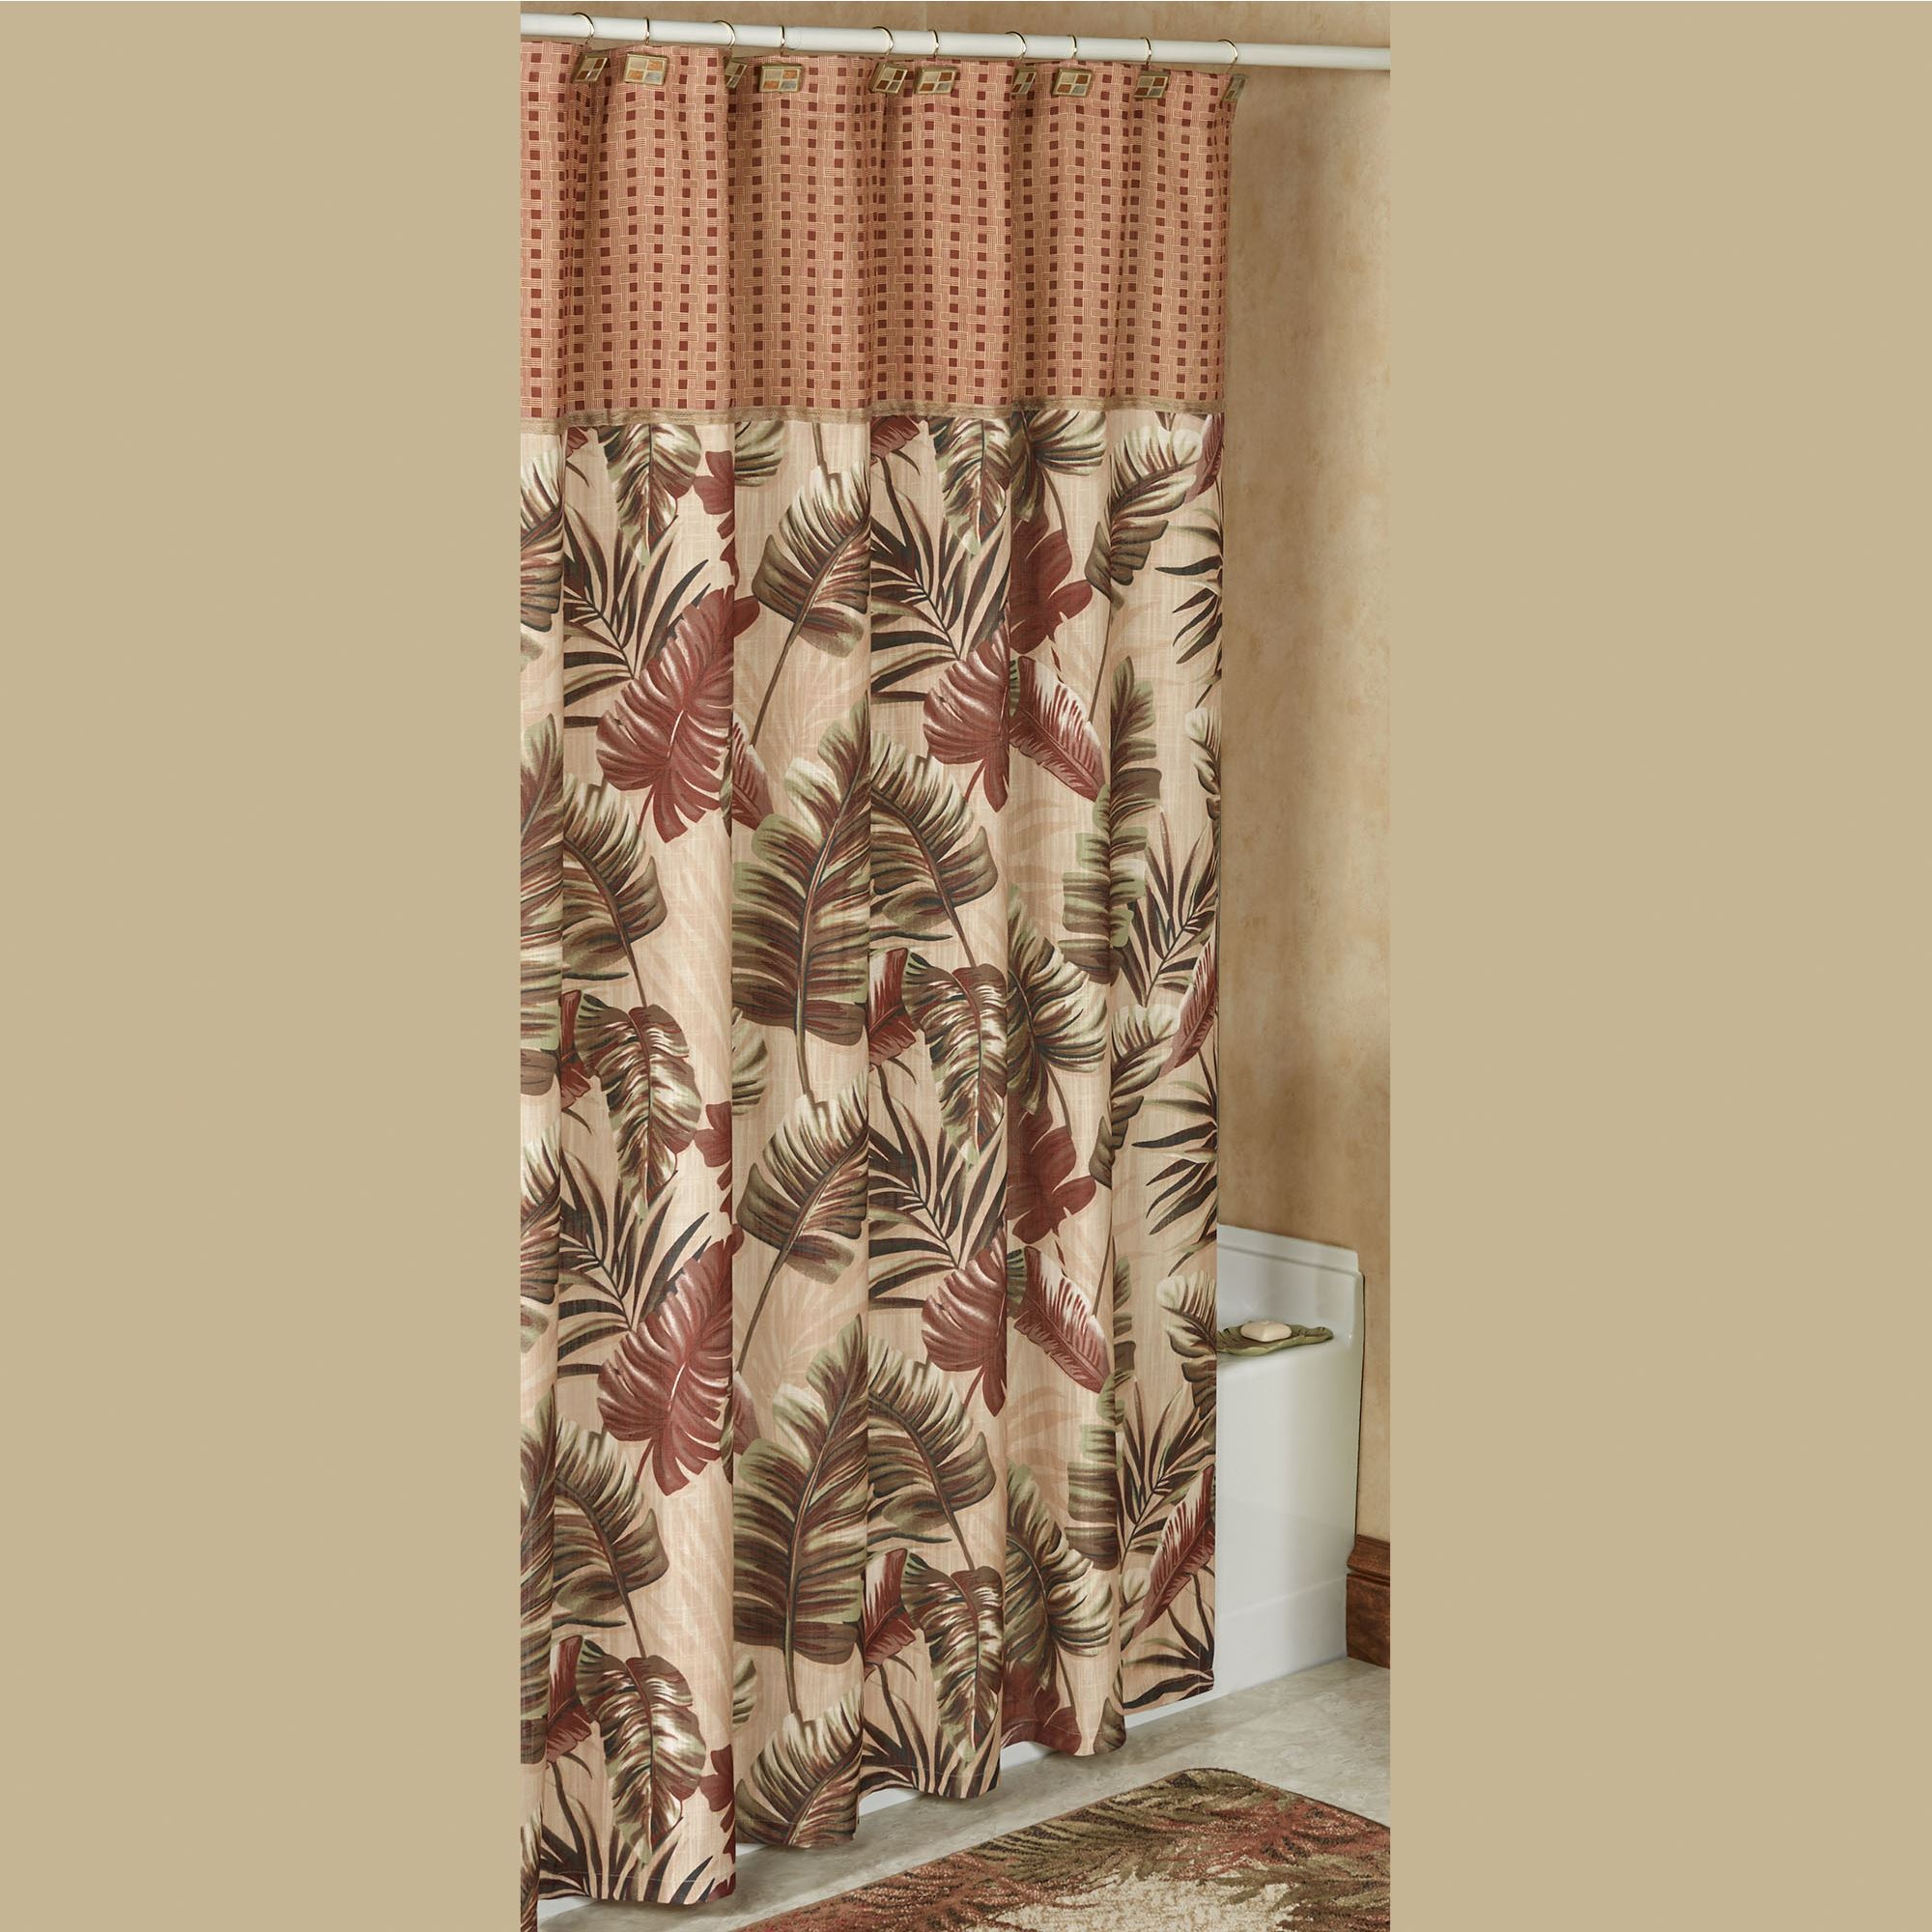 Key West Tropical Shower Curtain Multi Warm 72 X